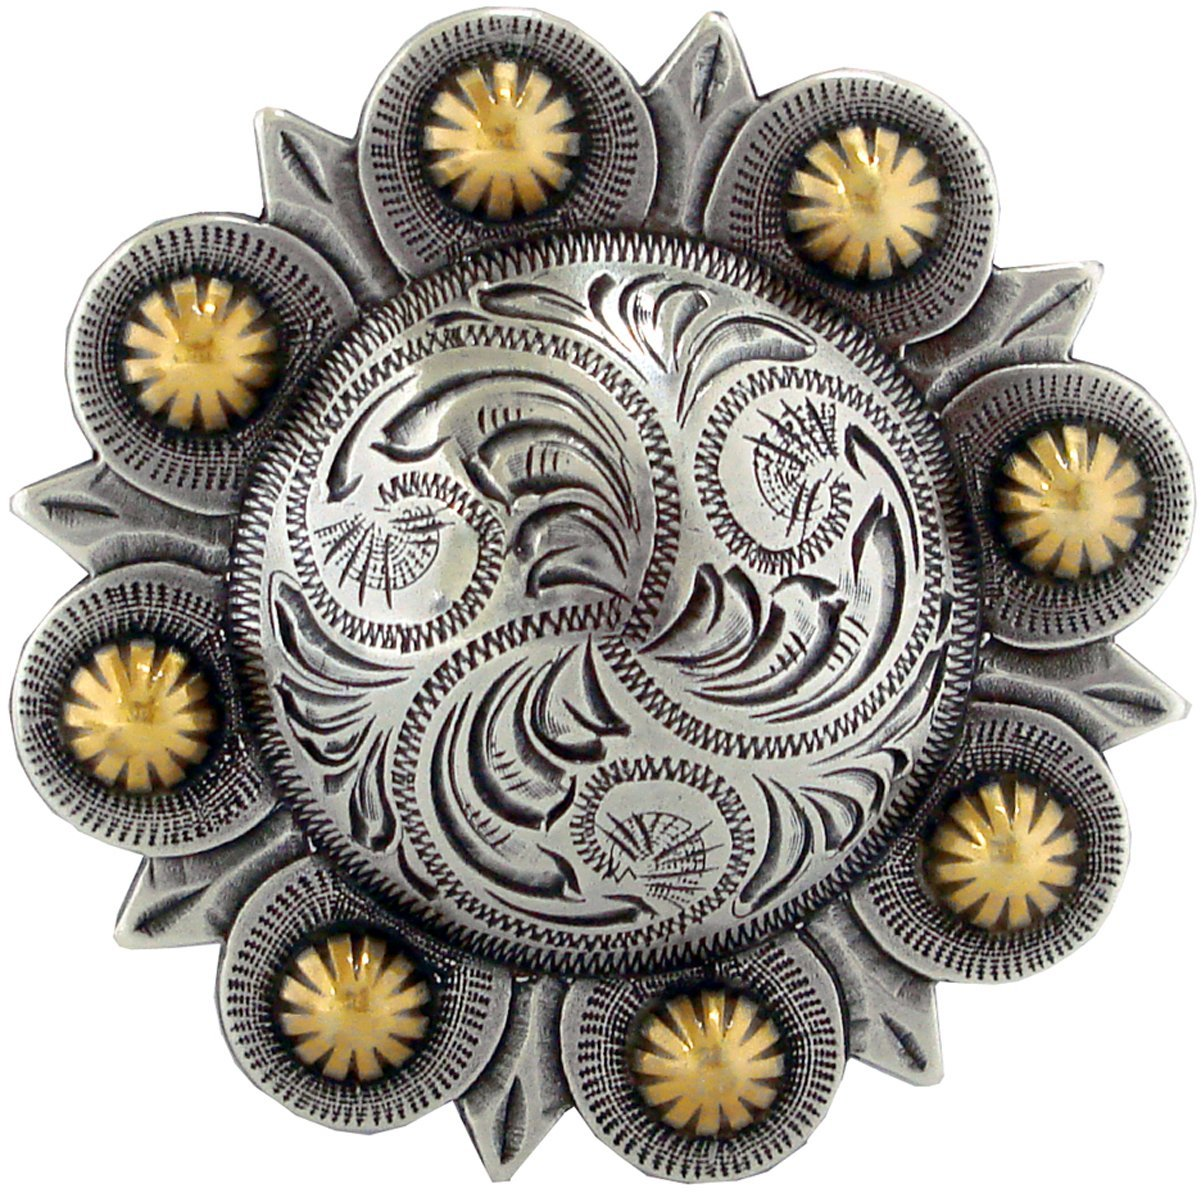 Antique Gold and Silver Finish Berry Design Metal Belt Buckle - $9.88